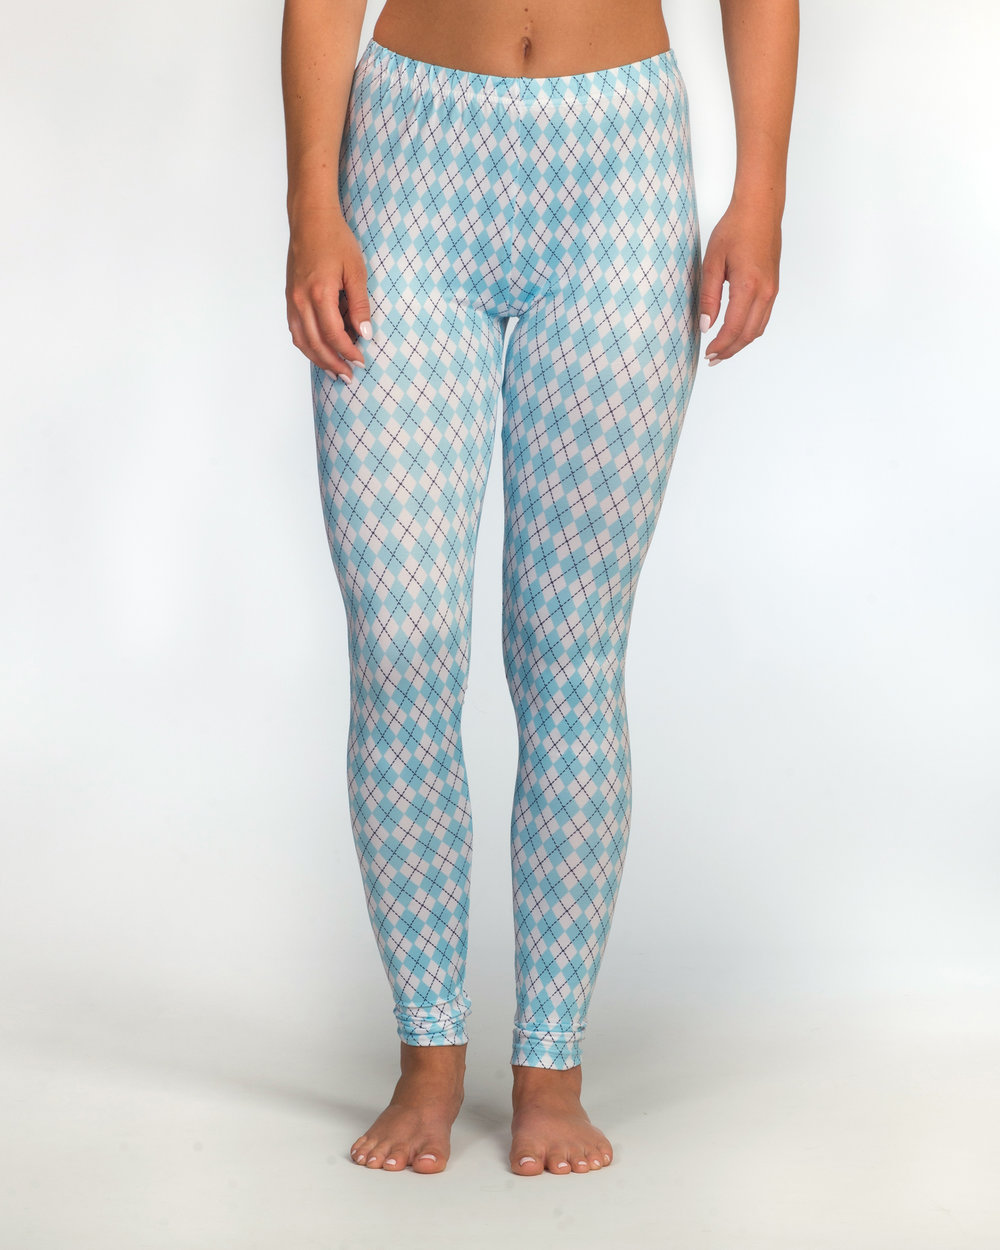 "Madison is 5' 6"" tall, has 31"" hips, and is rockin' a size S in UNC Argyle Gameday Leggings"